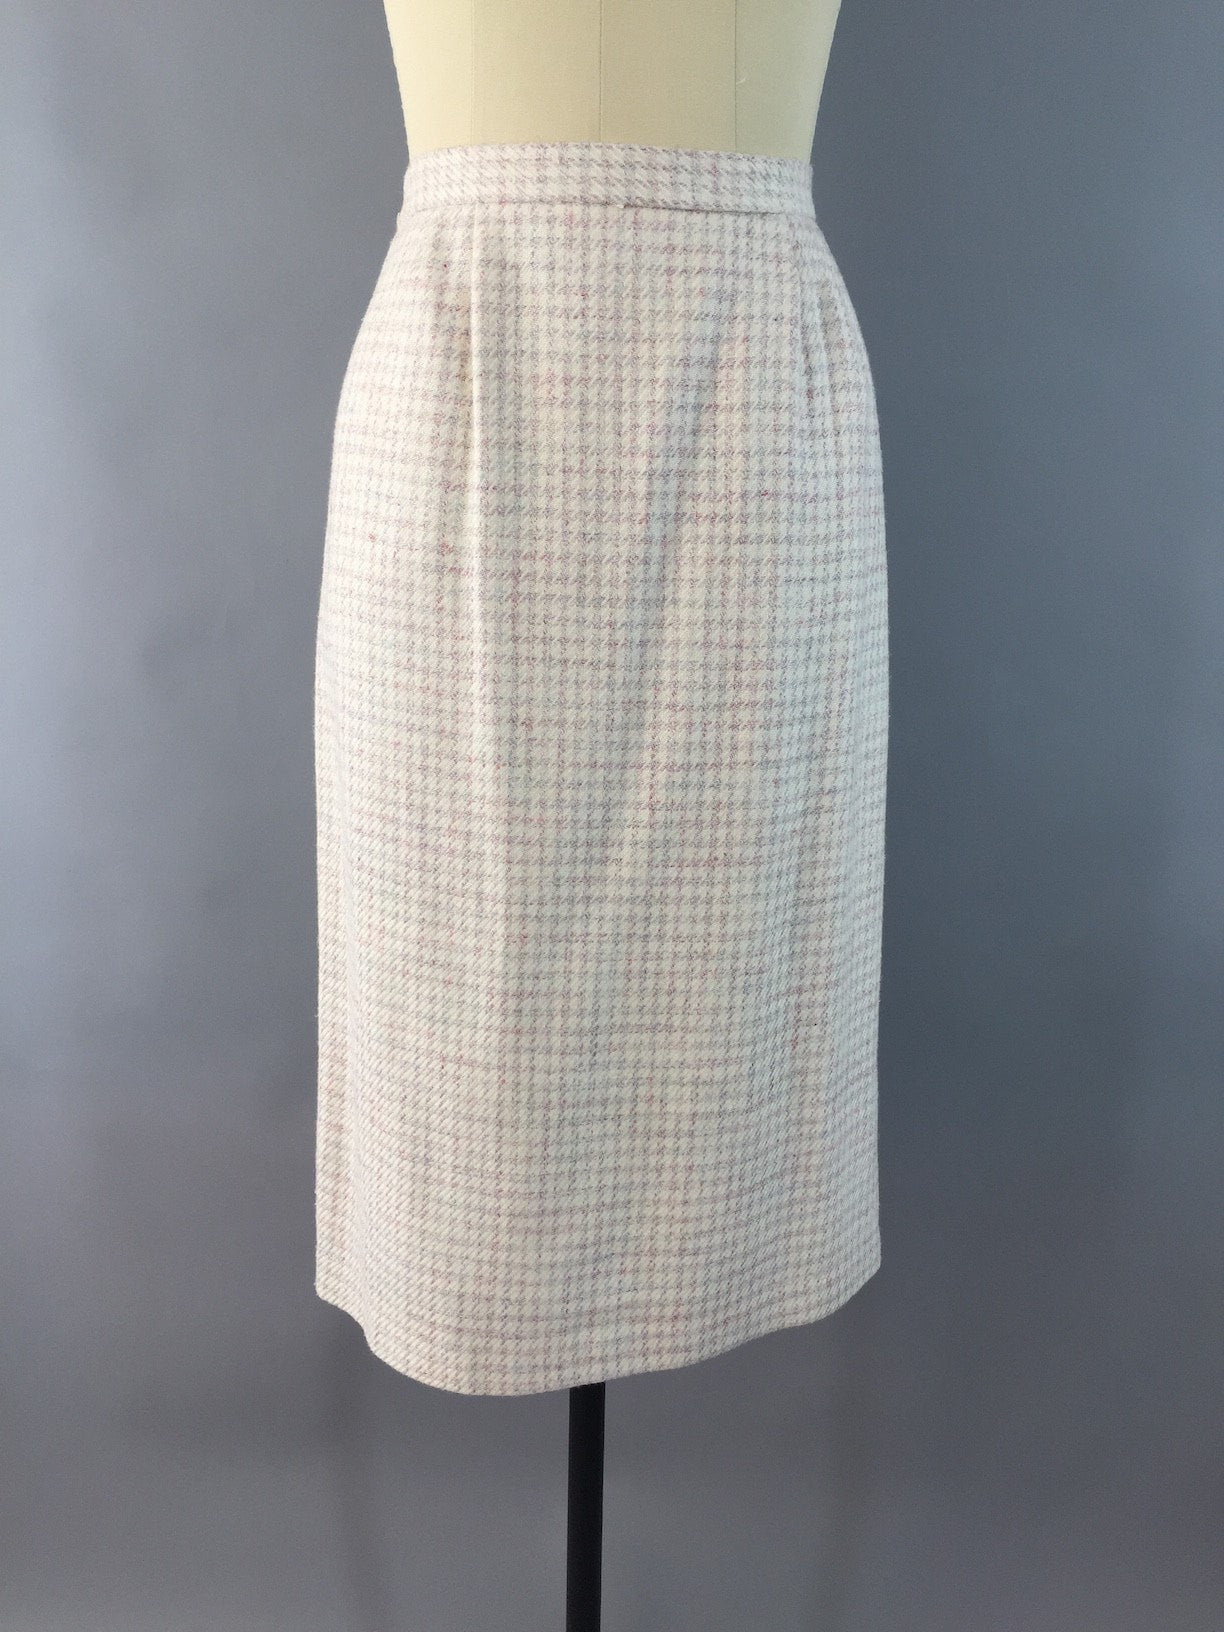 Vintage 1980s  Winter White Houndstooth Wool Pencil Skirt Bottoms ThisBlueBird - Sale